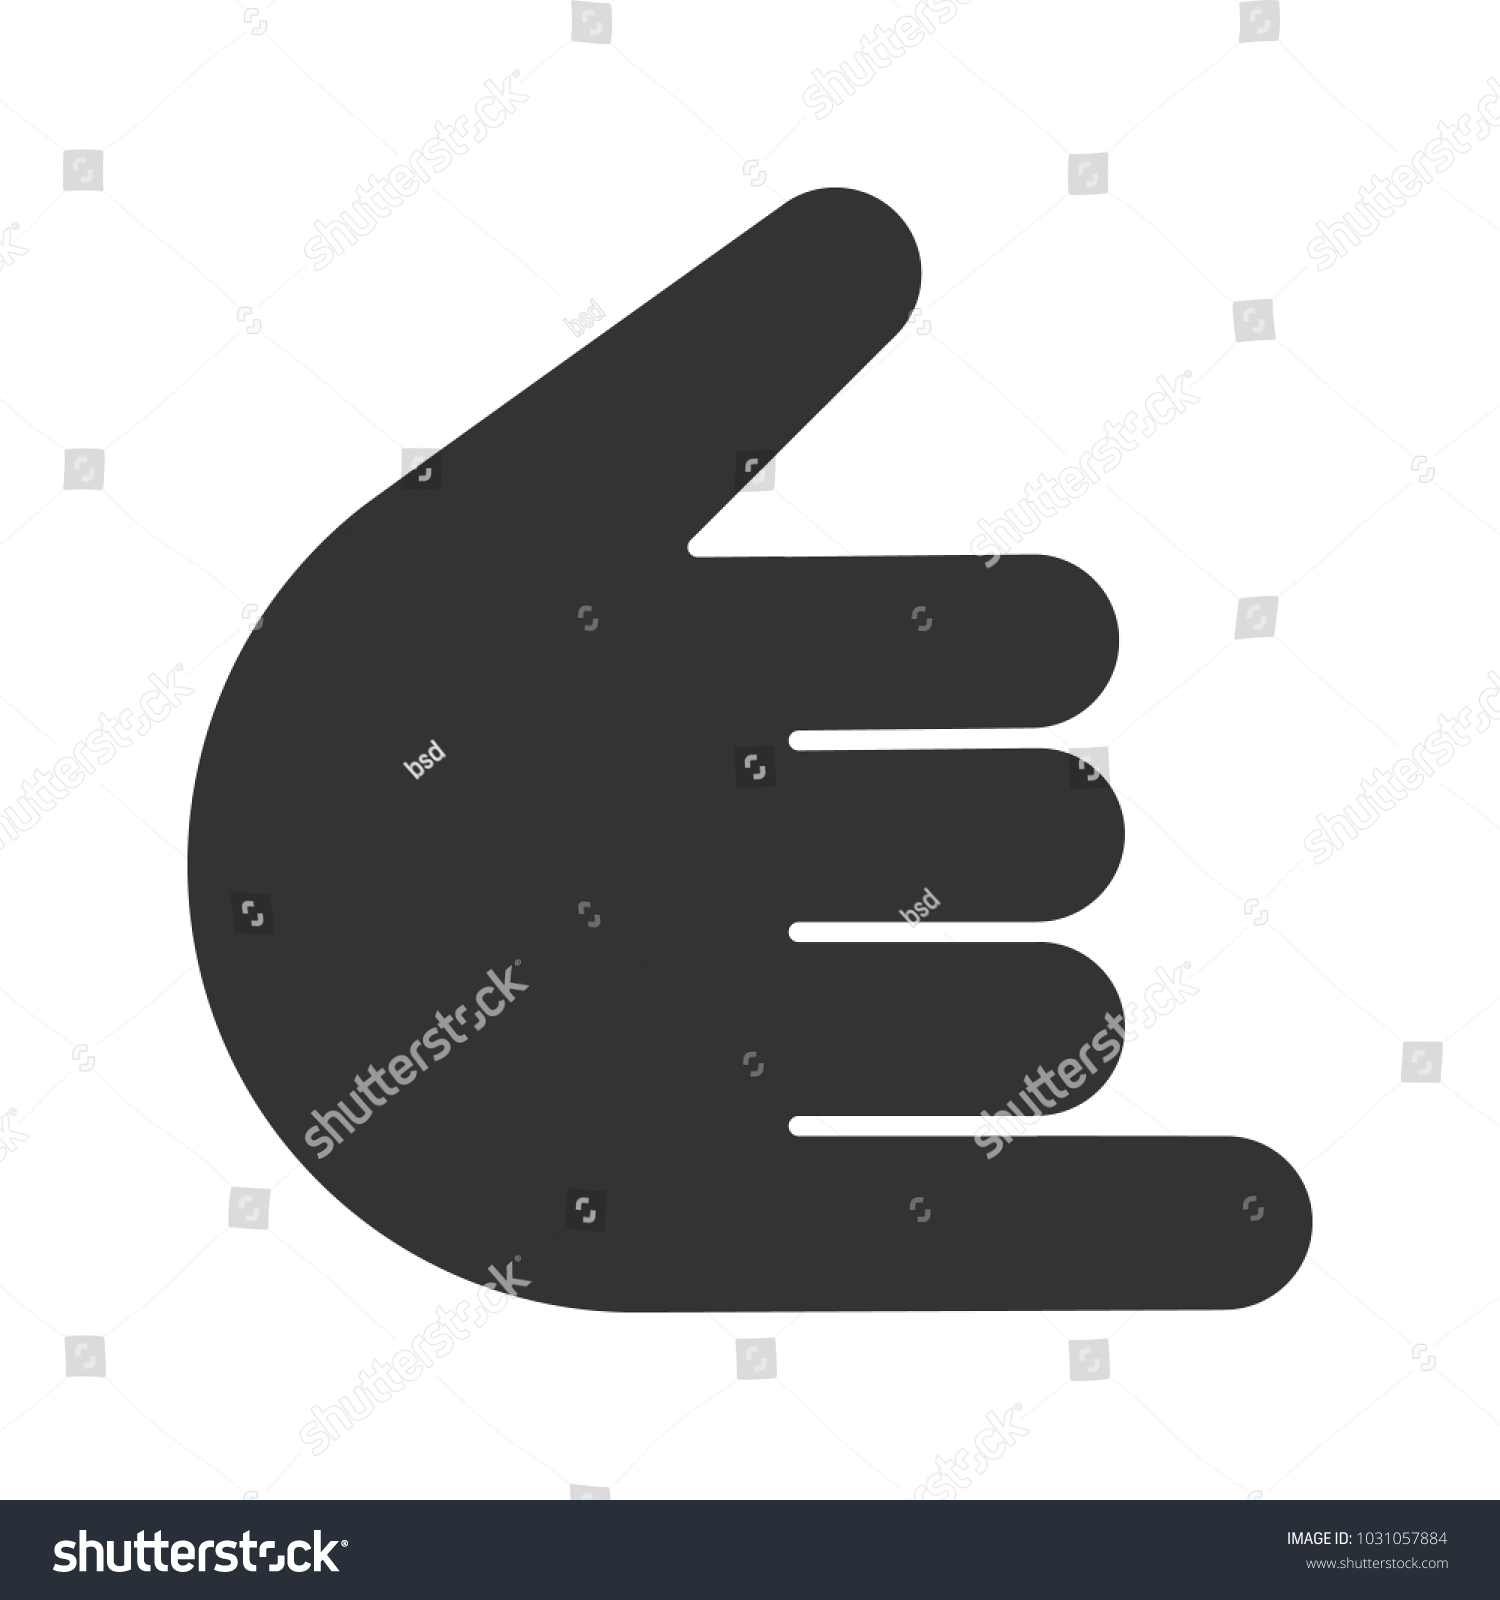 Corelogic stock symbol image collections symbol and sign ideas hang ten hand symbol images symbol and sign ideas shaka hand gesture glyph icon silhouette stock buycottarizona